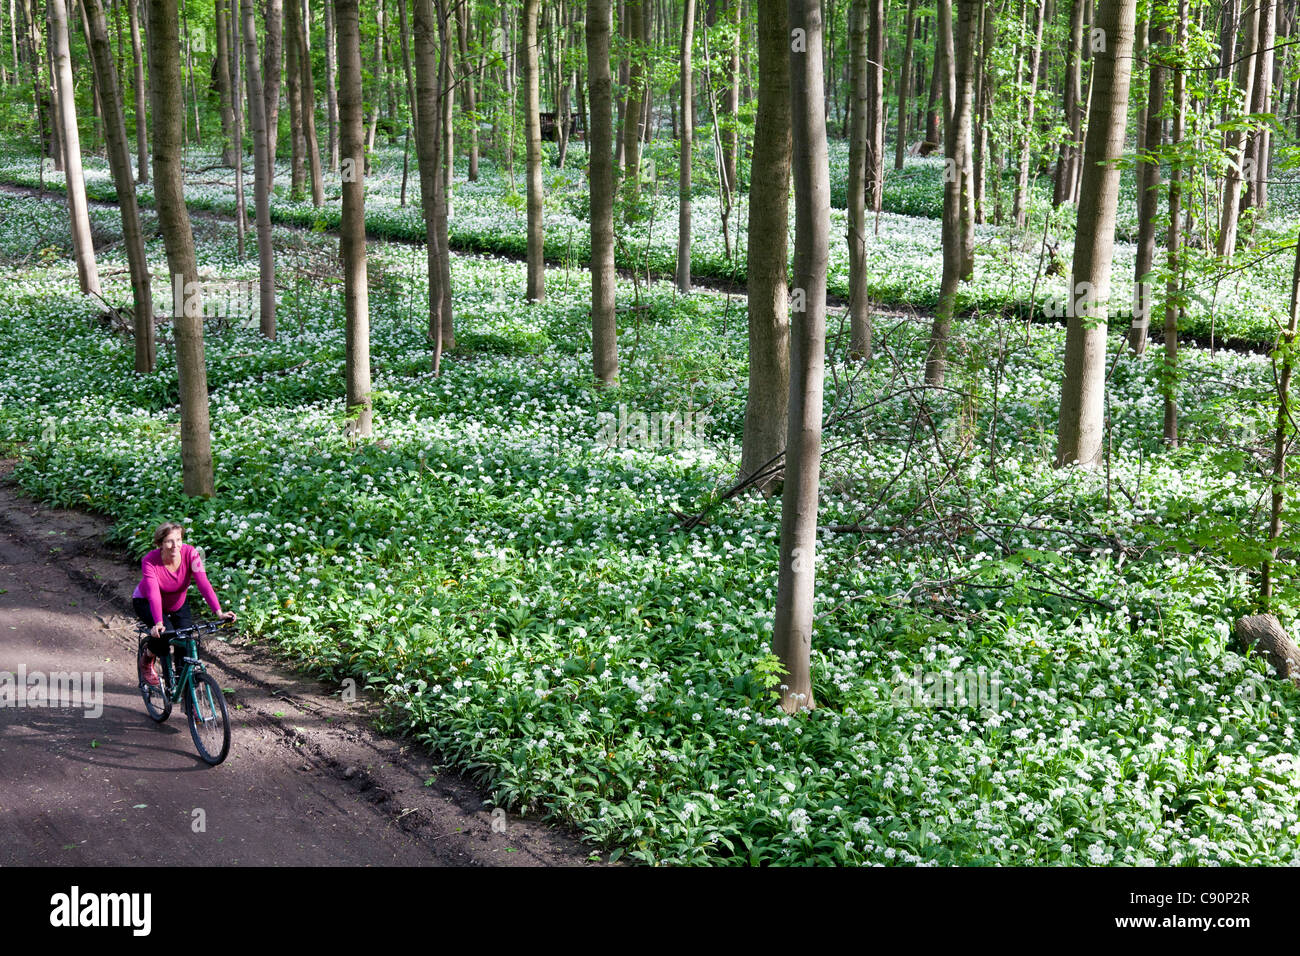 Female cyclist passing riparian forest with blooming wild garlic, Leipzig, Saxony, Germany - Stock Image